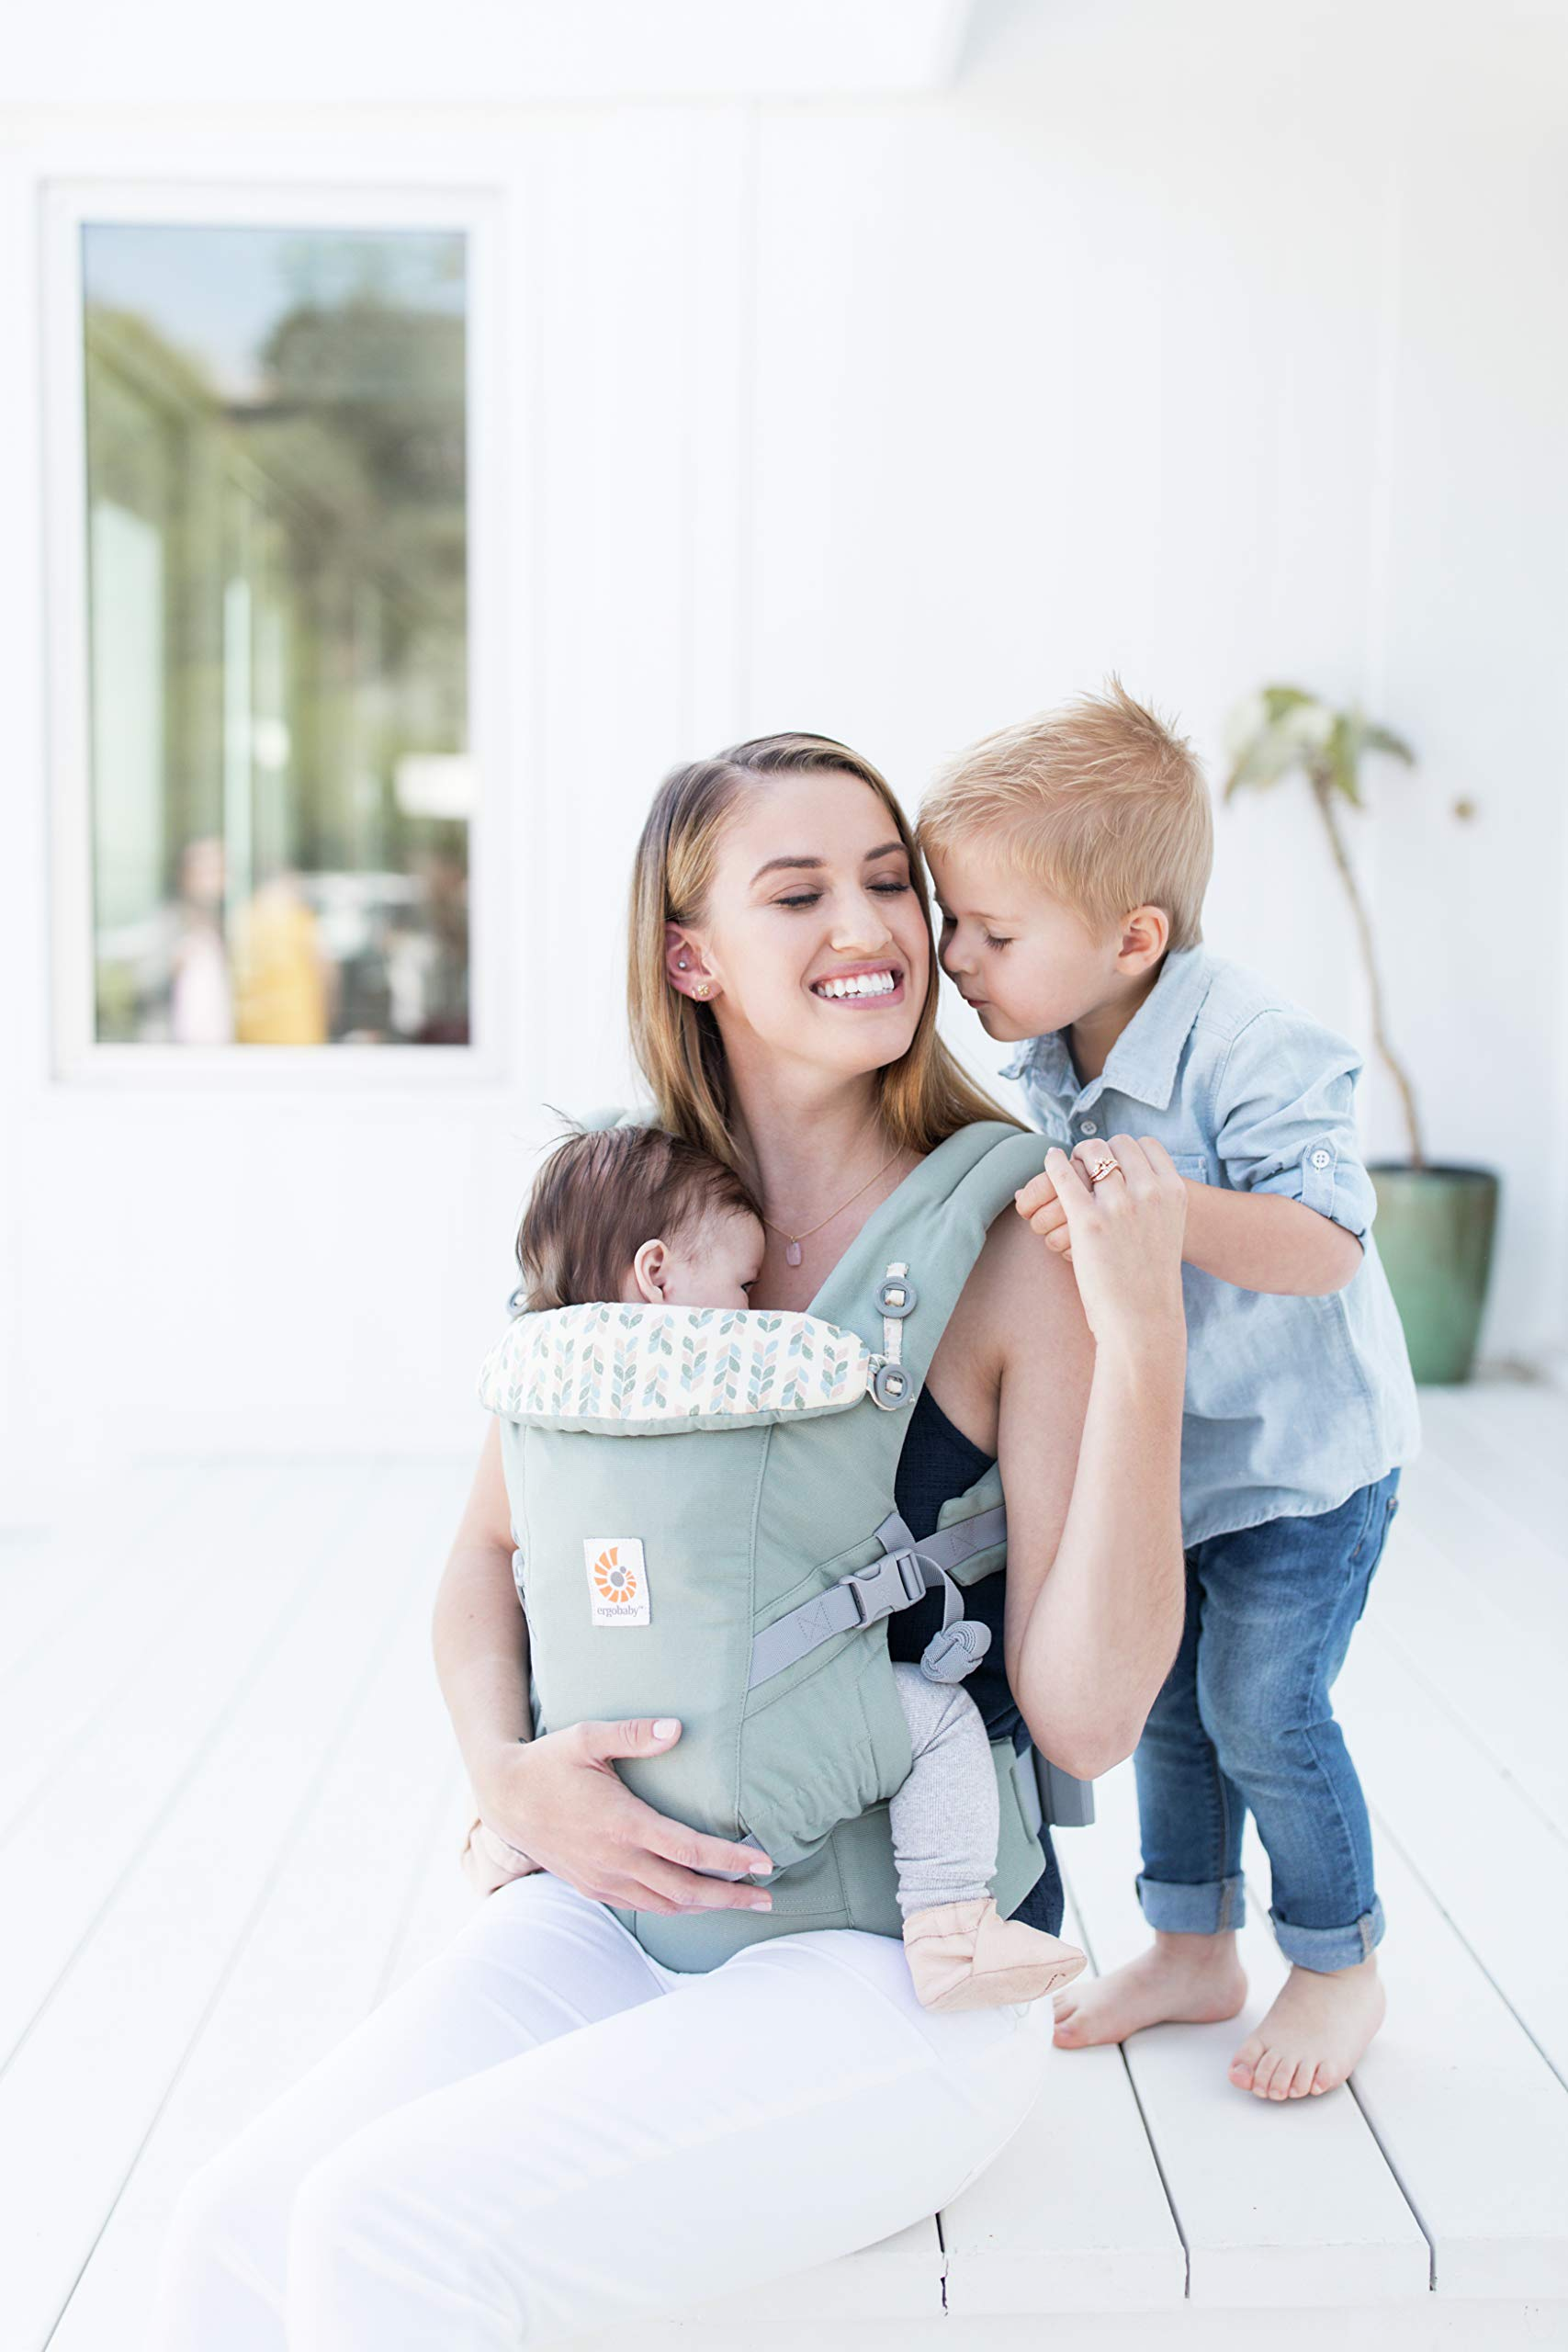 Ergobaby Baby Carrier Collection Adapt (3.2-20 kg), Sage Ergobaby 3 ergonomic wearing positions: on the front, on the back and on the hips Especially easy to use Suitable from birth (3.2 - 20kg) thanks to unique adjustment options 4